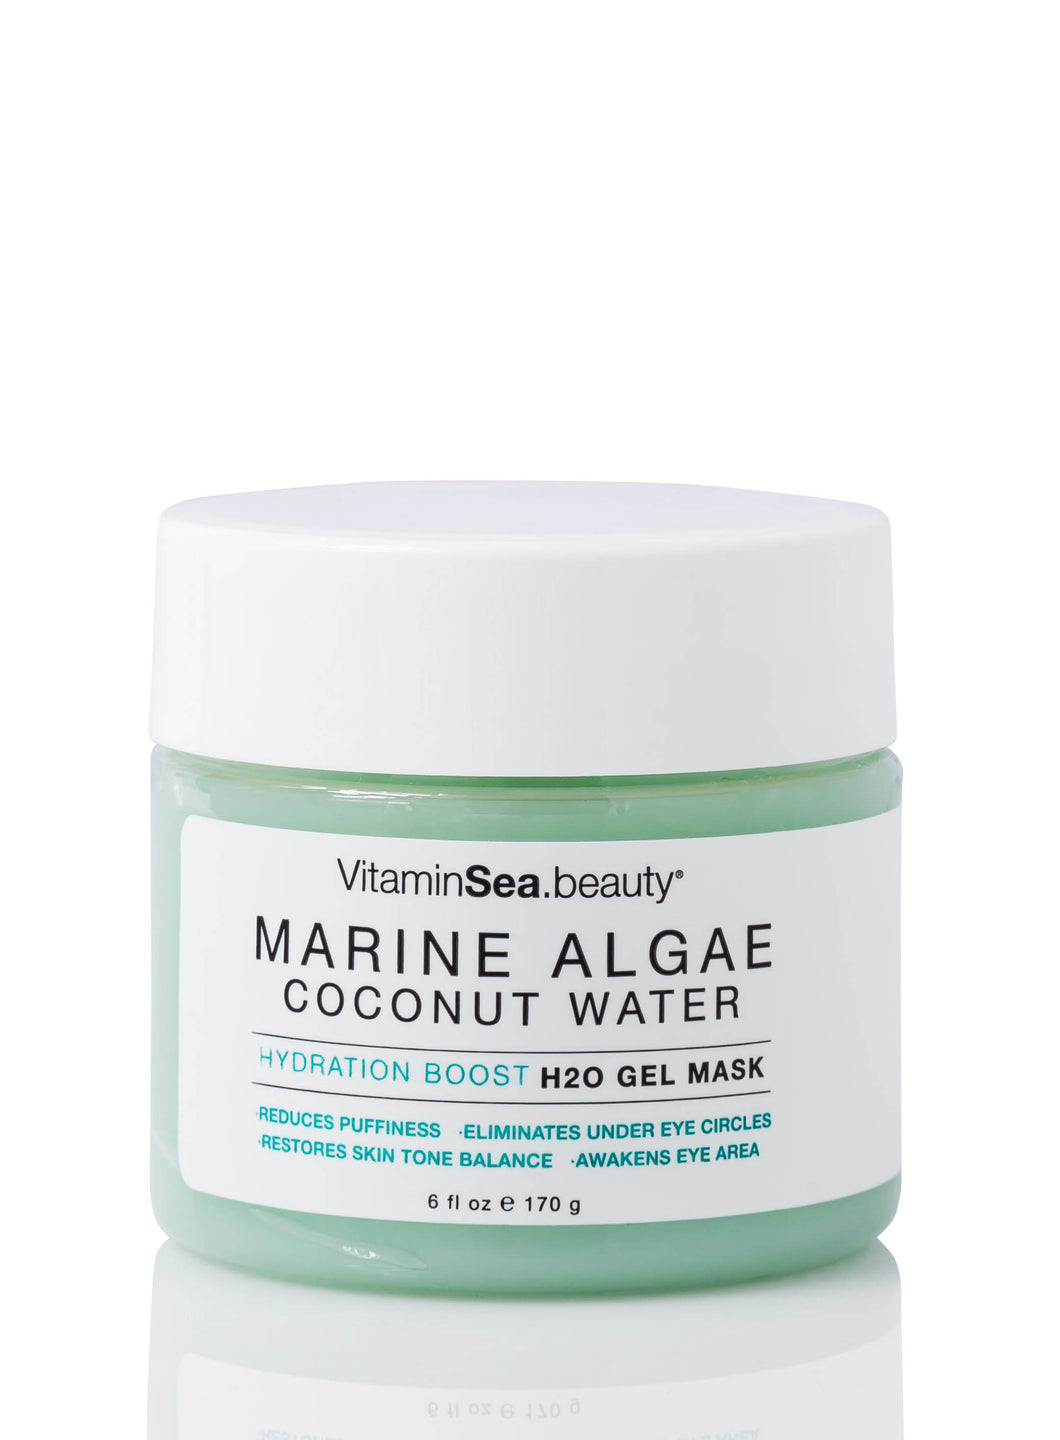 Marine Algae & Coconut Water Hydration Boost H2O Gel Mask